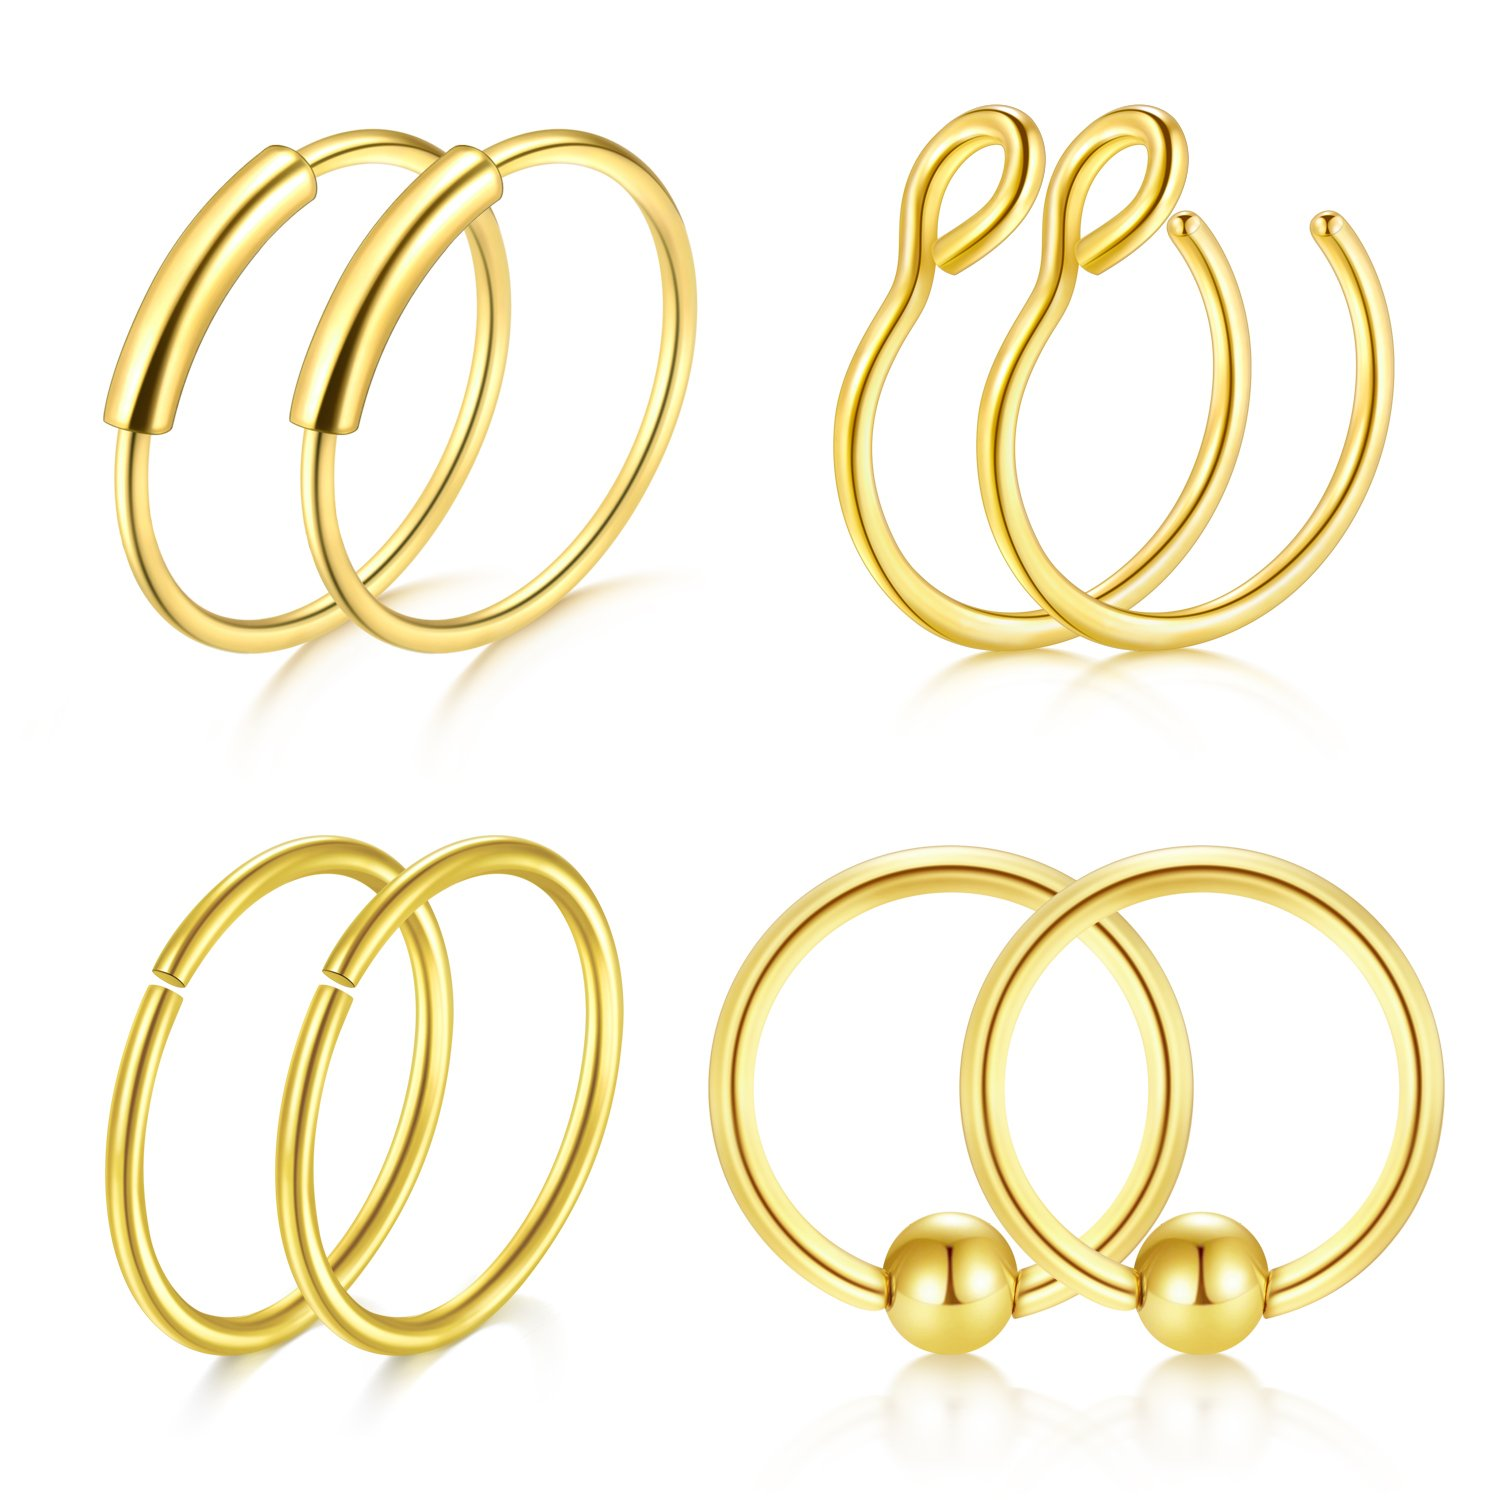 Briana Williams 20G 8mm Nose Rings Hoop Septum Ring Fake Nose Ring Eyebrow Lip Ear Septum Piercing Surgical Steel Jewelry 8pcs ZUHE -5 -3